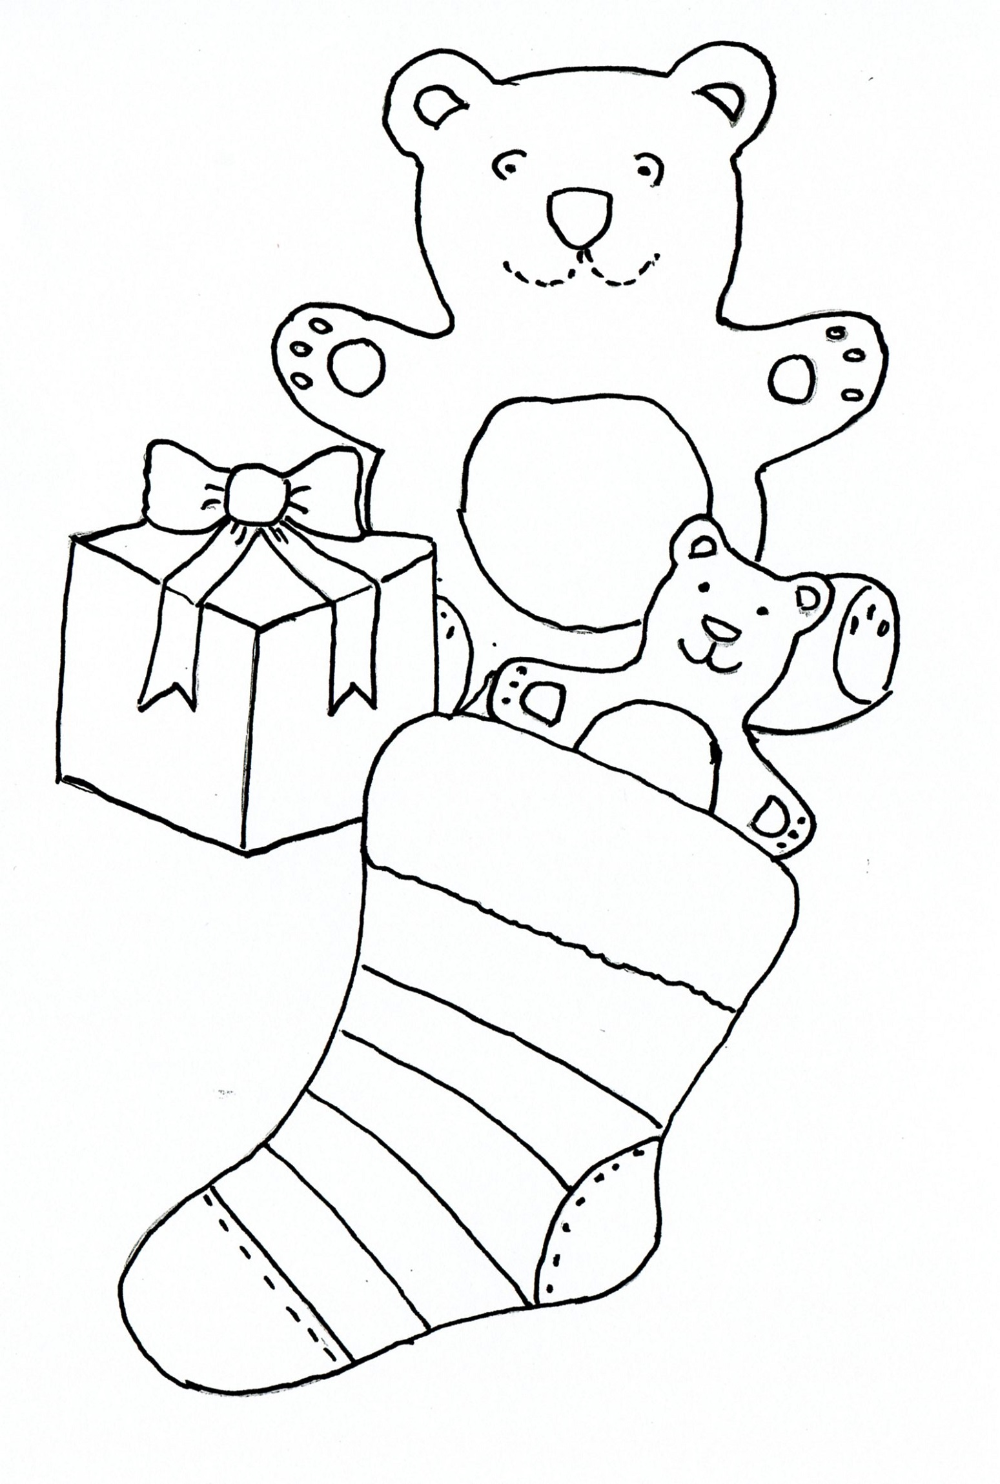 Kids Drawing Templates And Coloring Drawing Templates Drawing For Kids Christmas Drawing